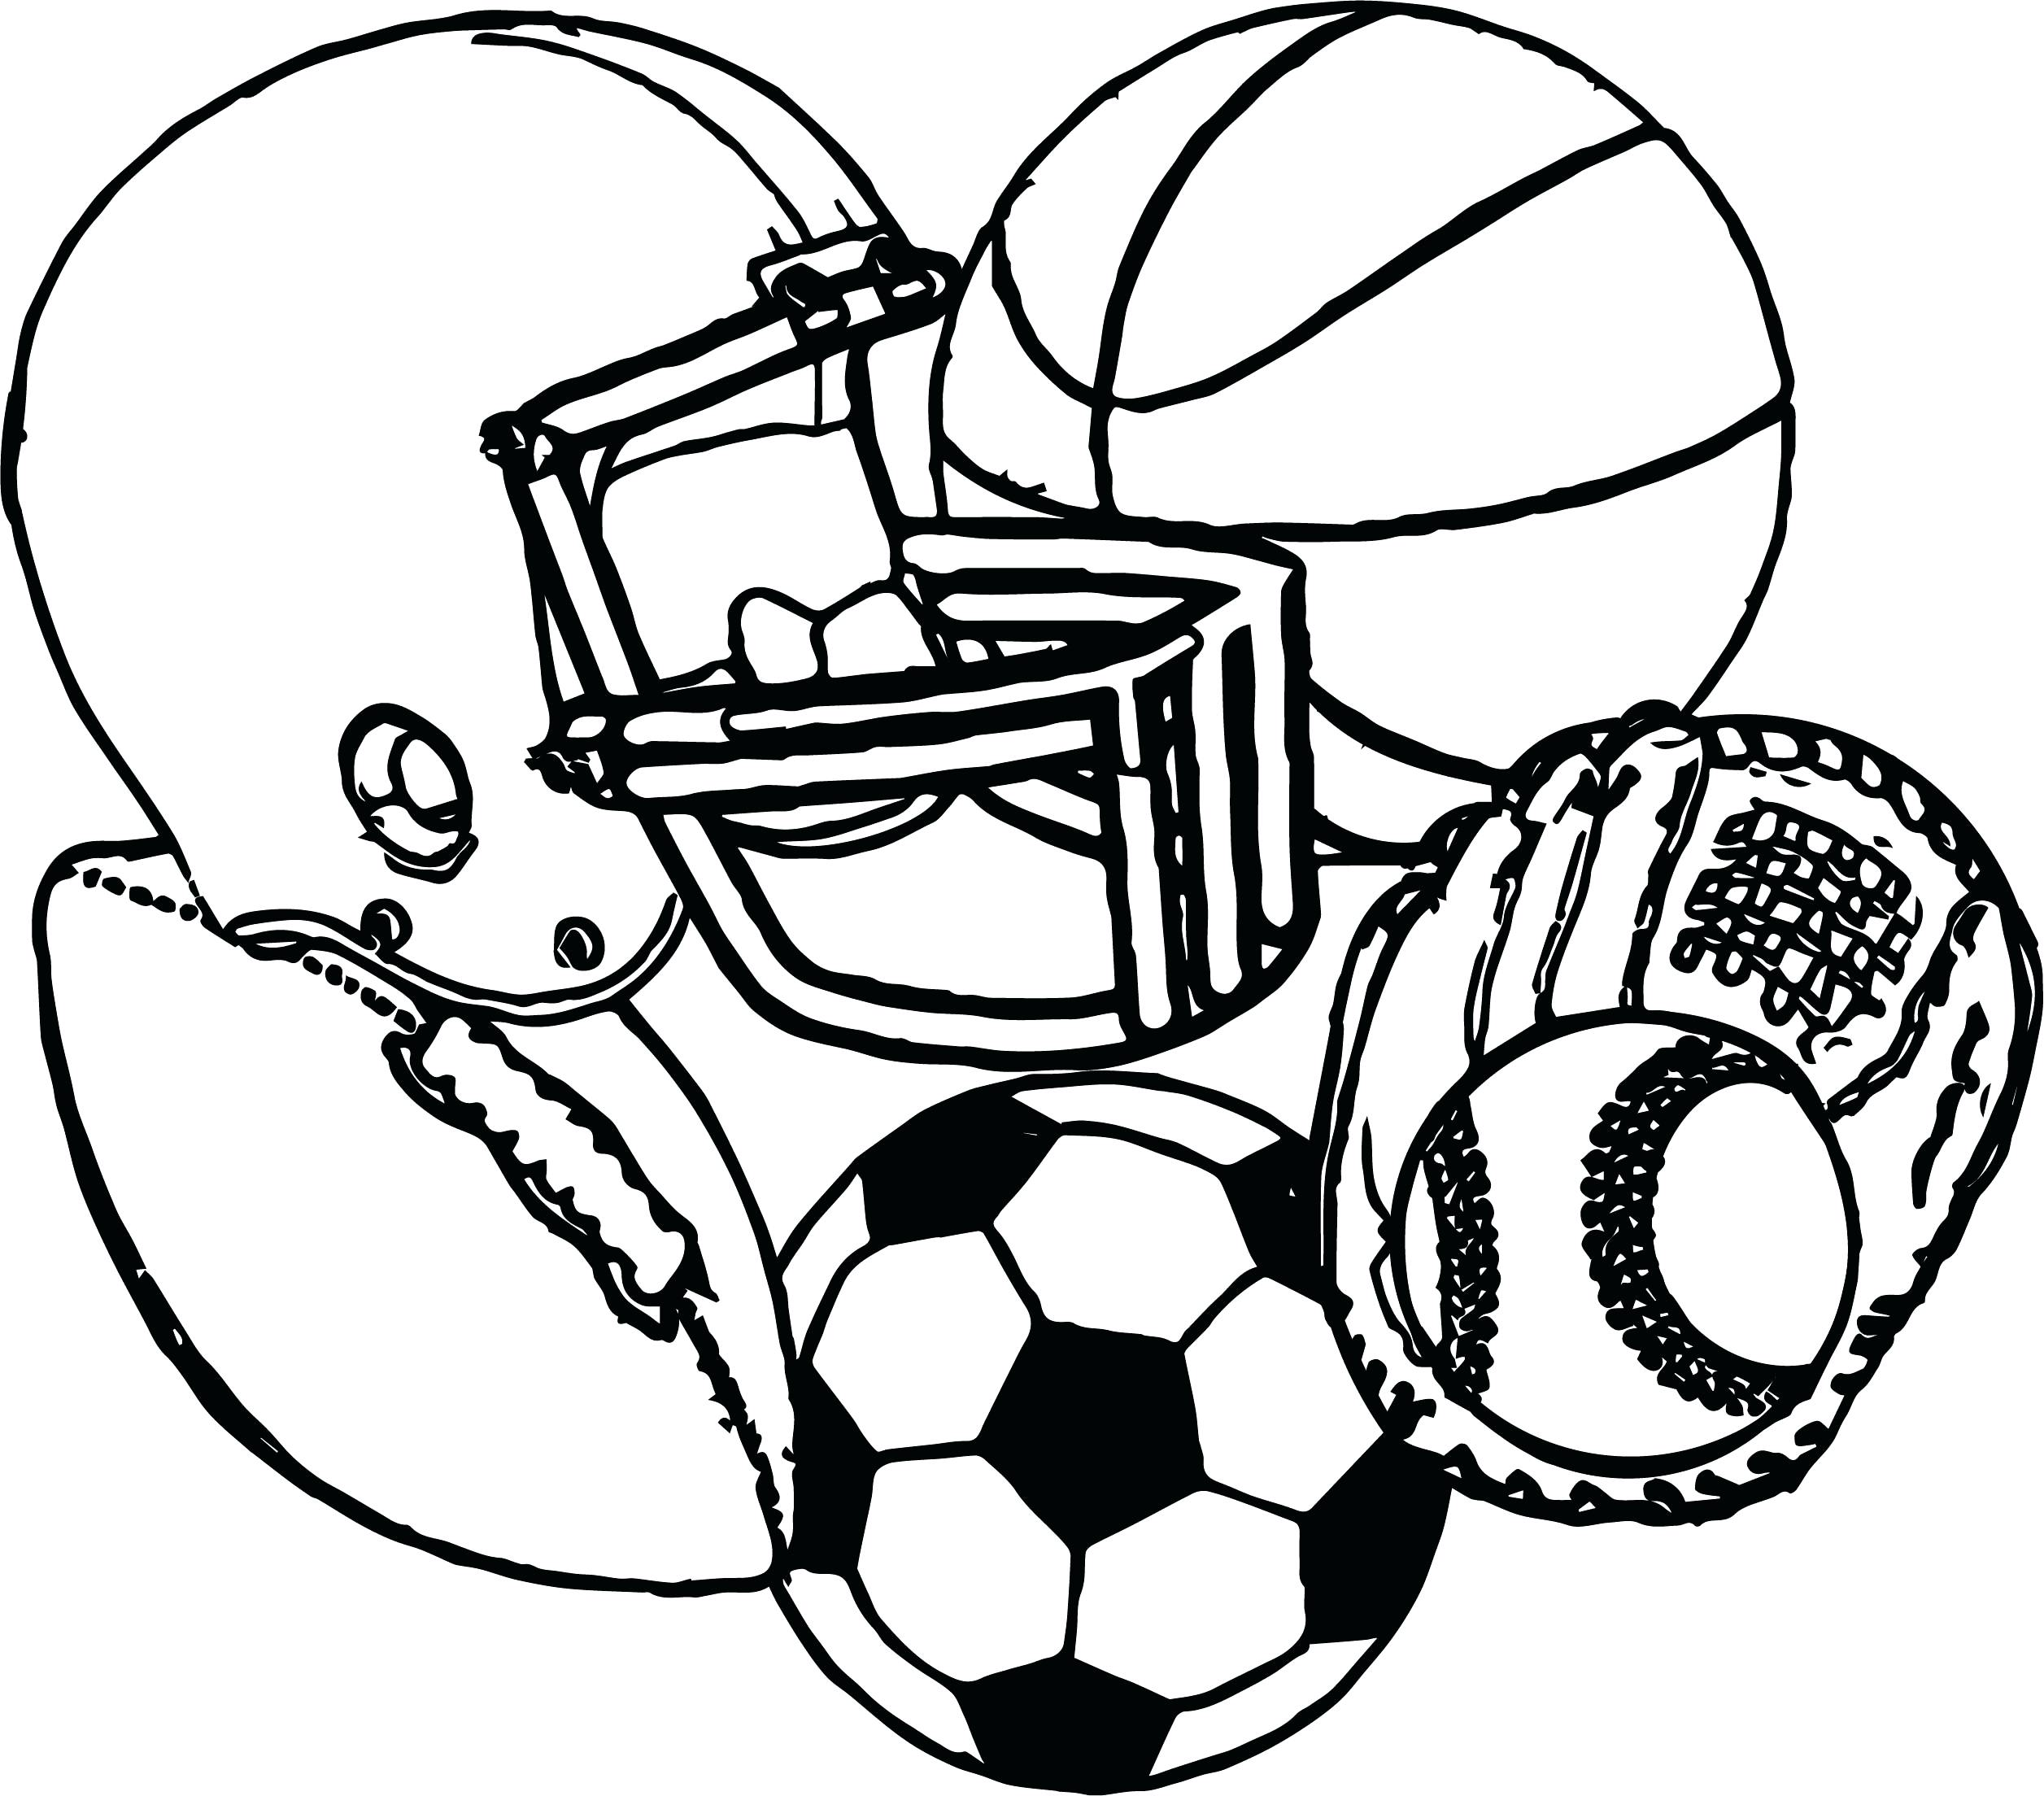 2513x2208 Lavishly Coloring Pages Of Football Teams